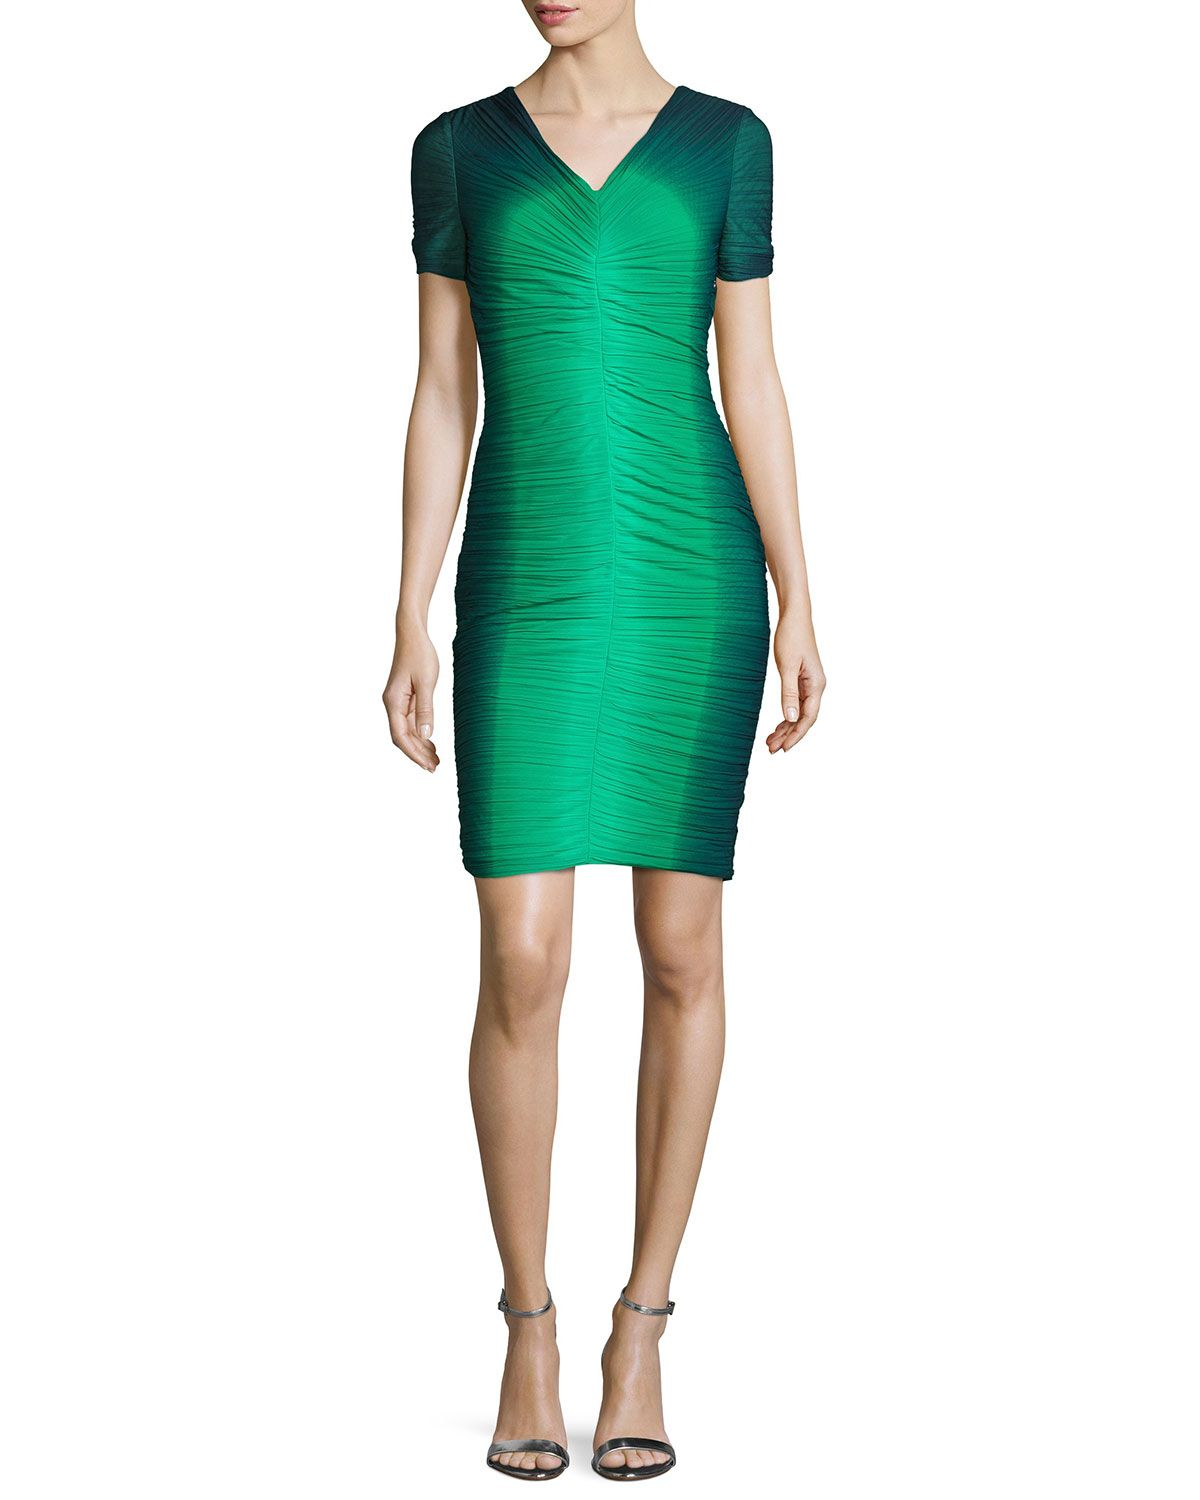 Ombre ruched cocktail dress grassnavy ombre greennavy ombre